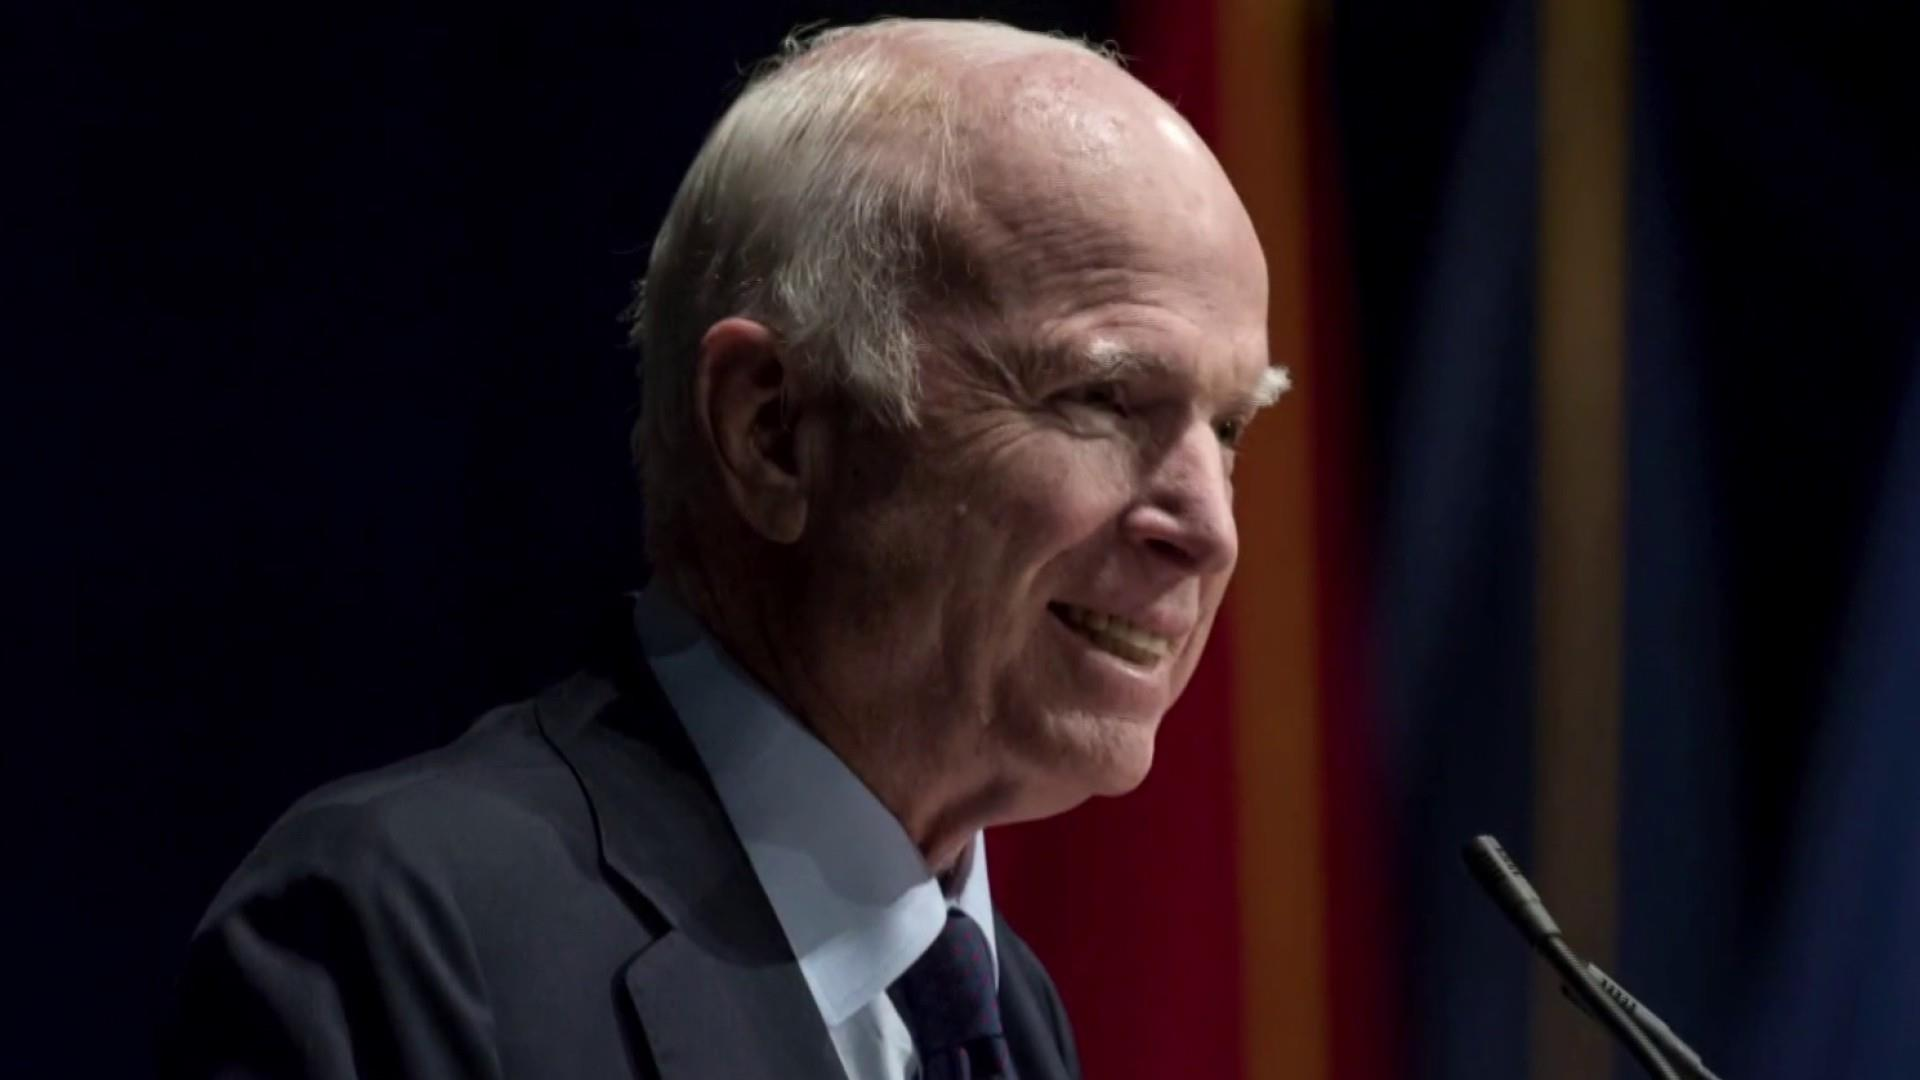 War Hero John McCain's great deeds and service to this country